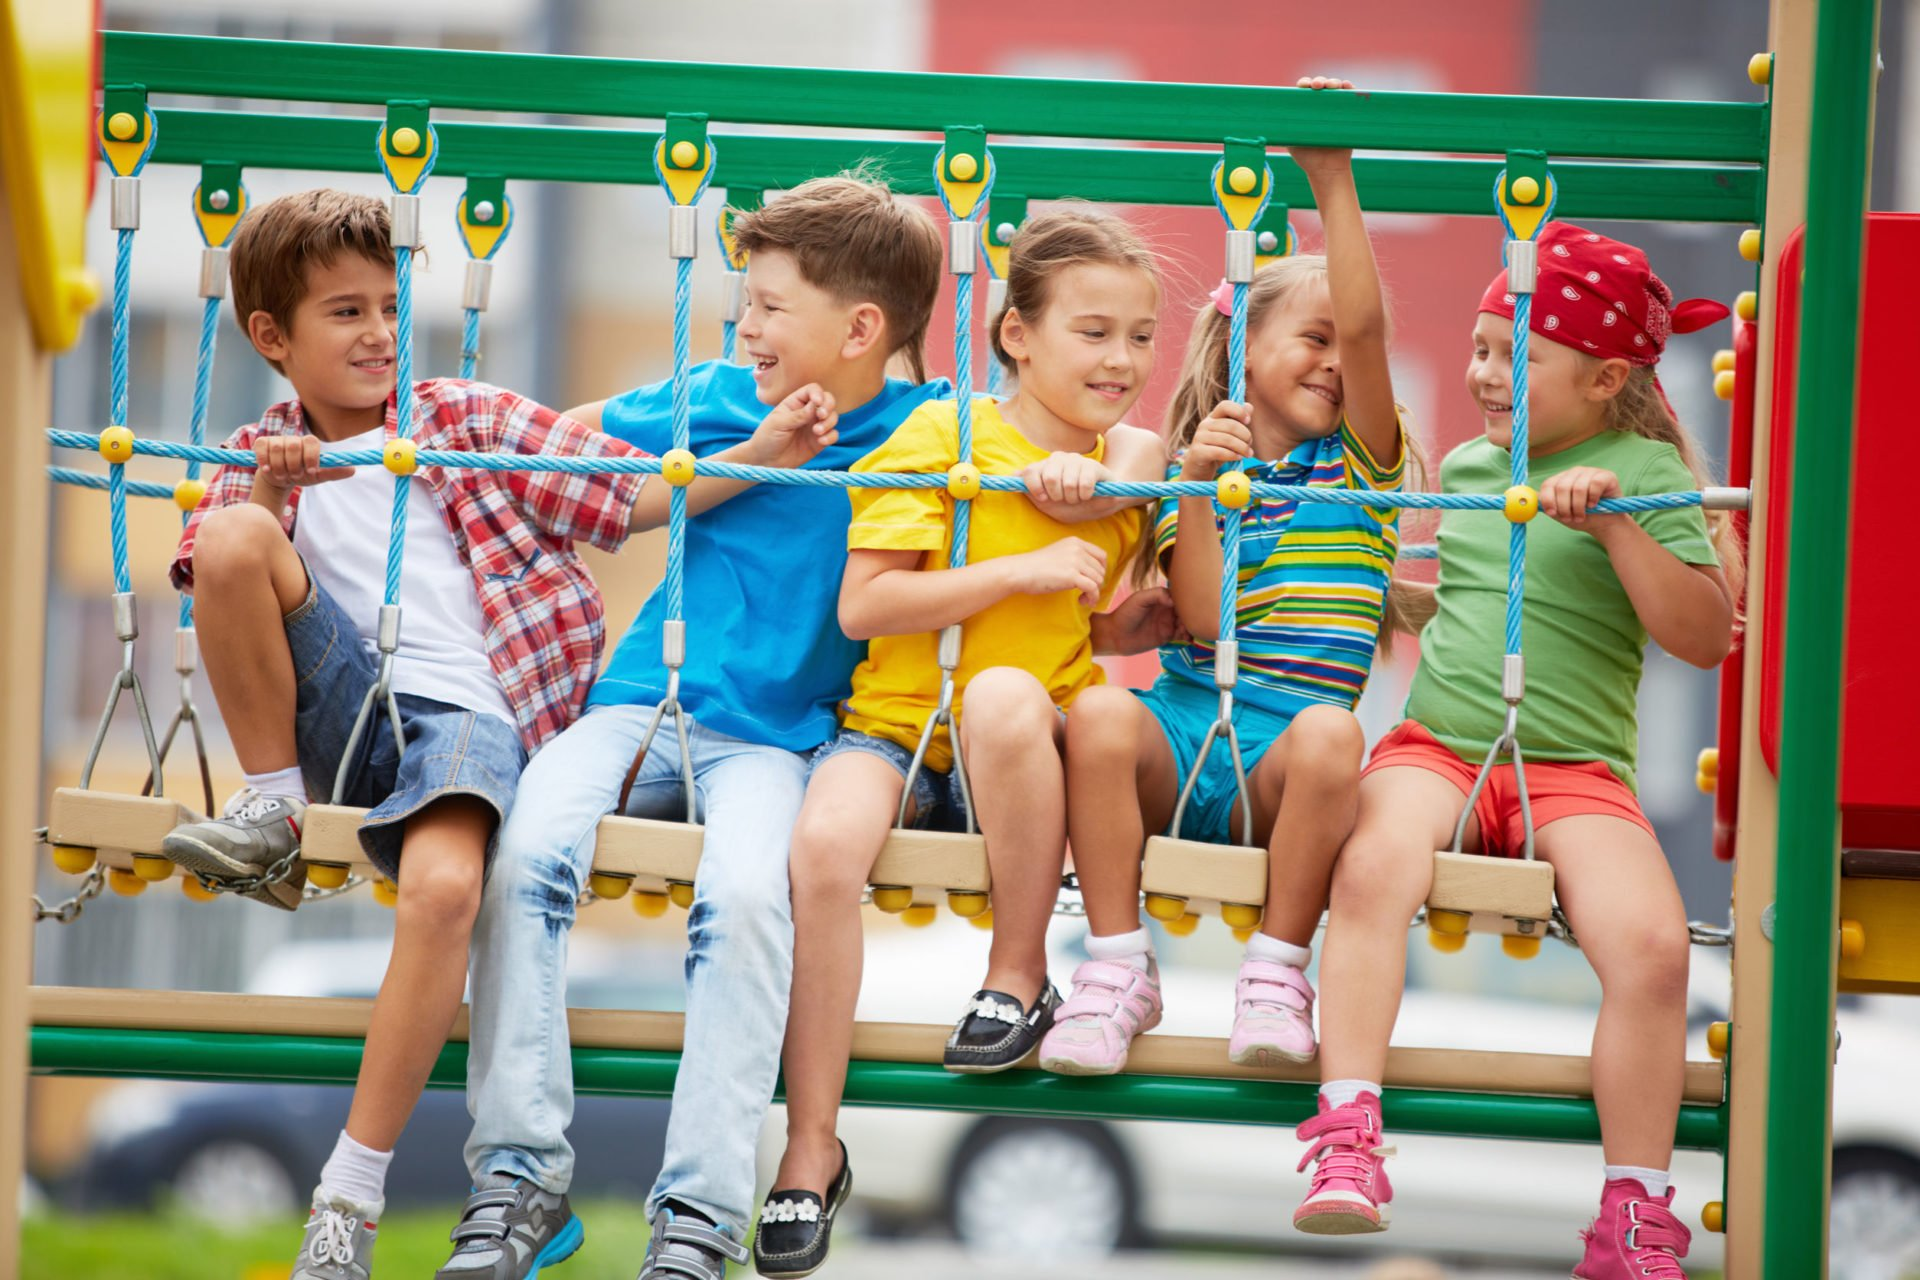 Common Injuries NY Kids Suffer in the Summer